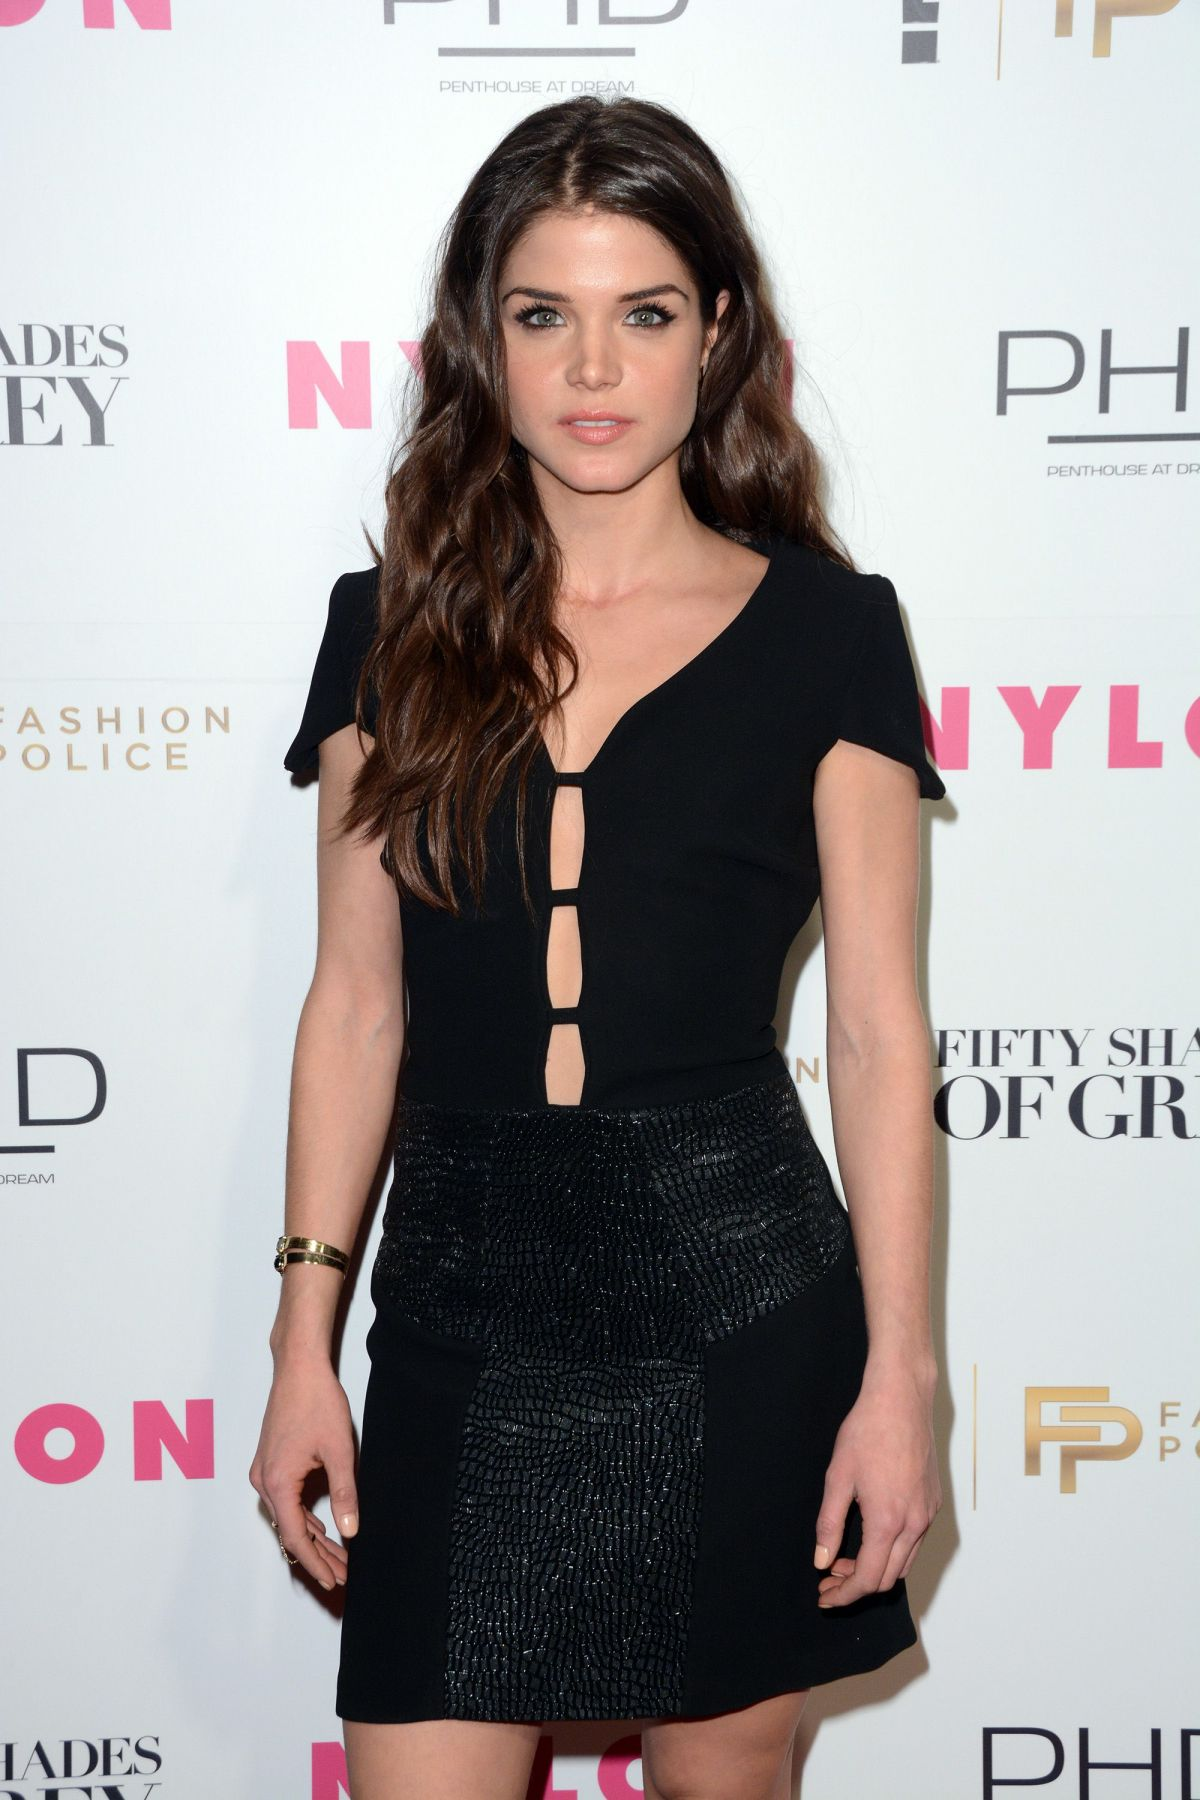 Ny fashion week kickoff with fifty shades of fashion event in new york